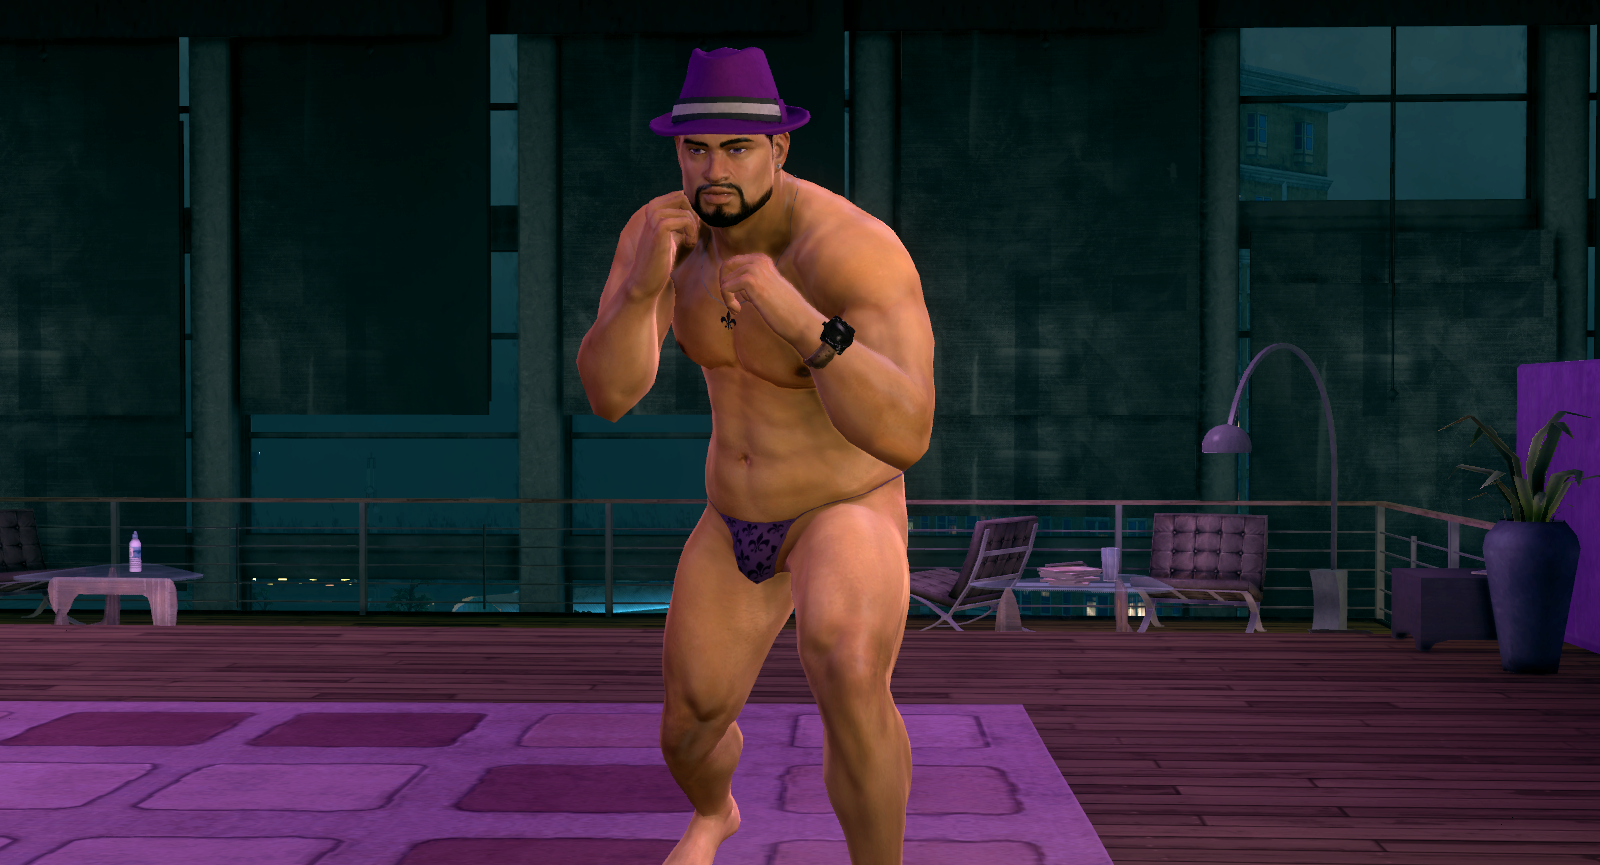 Saint row 4 male nude mode patch adult photos